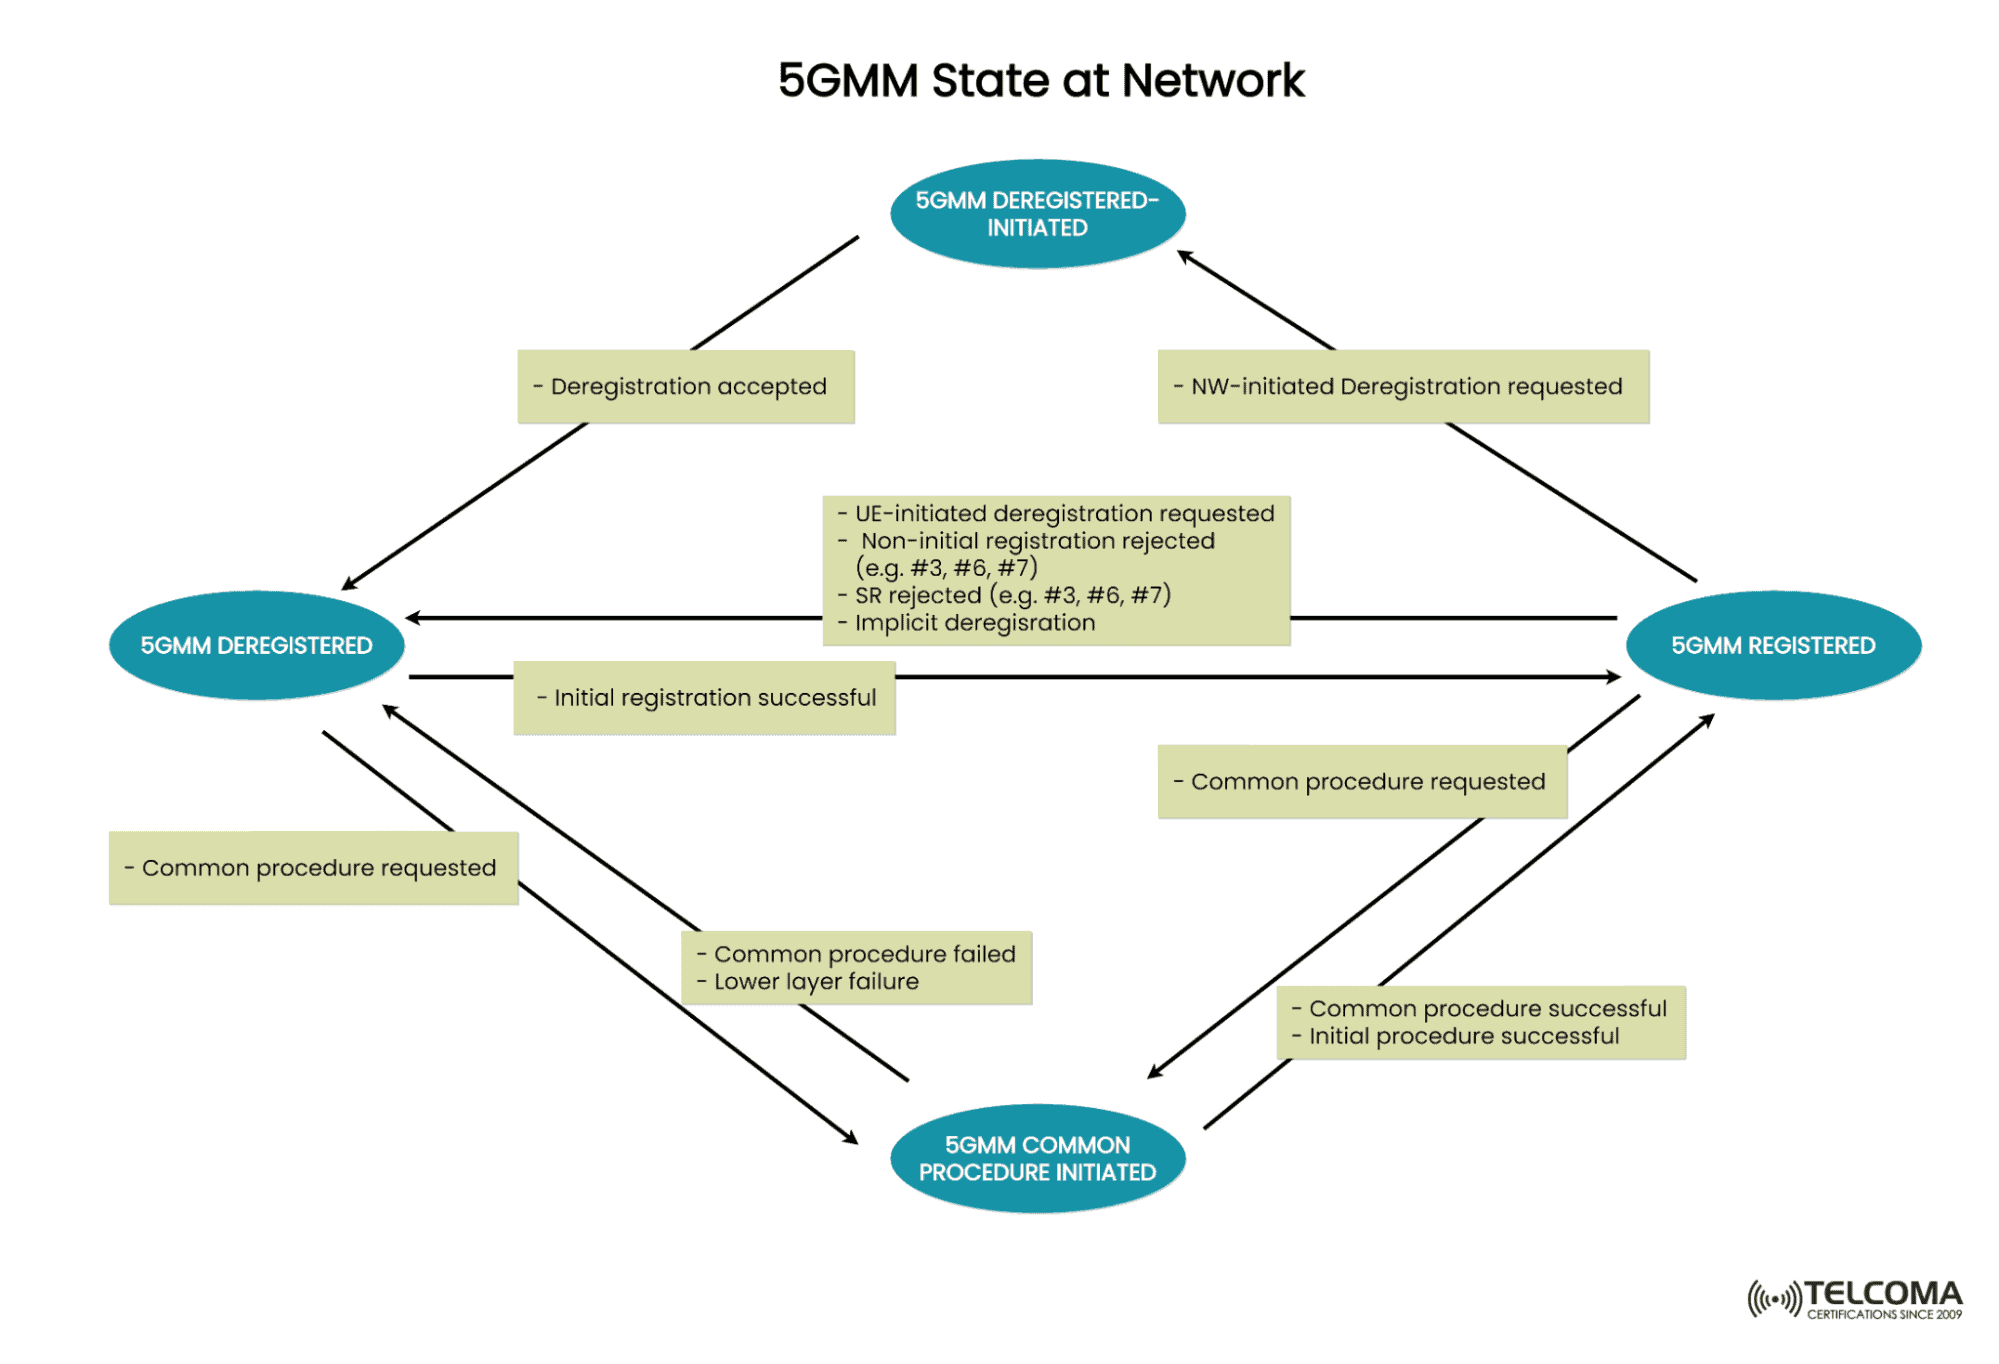 5GMM state at the Network